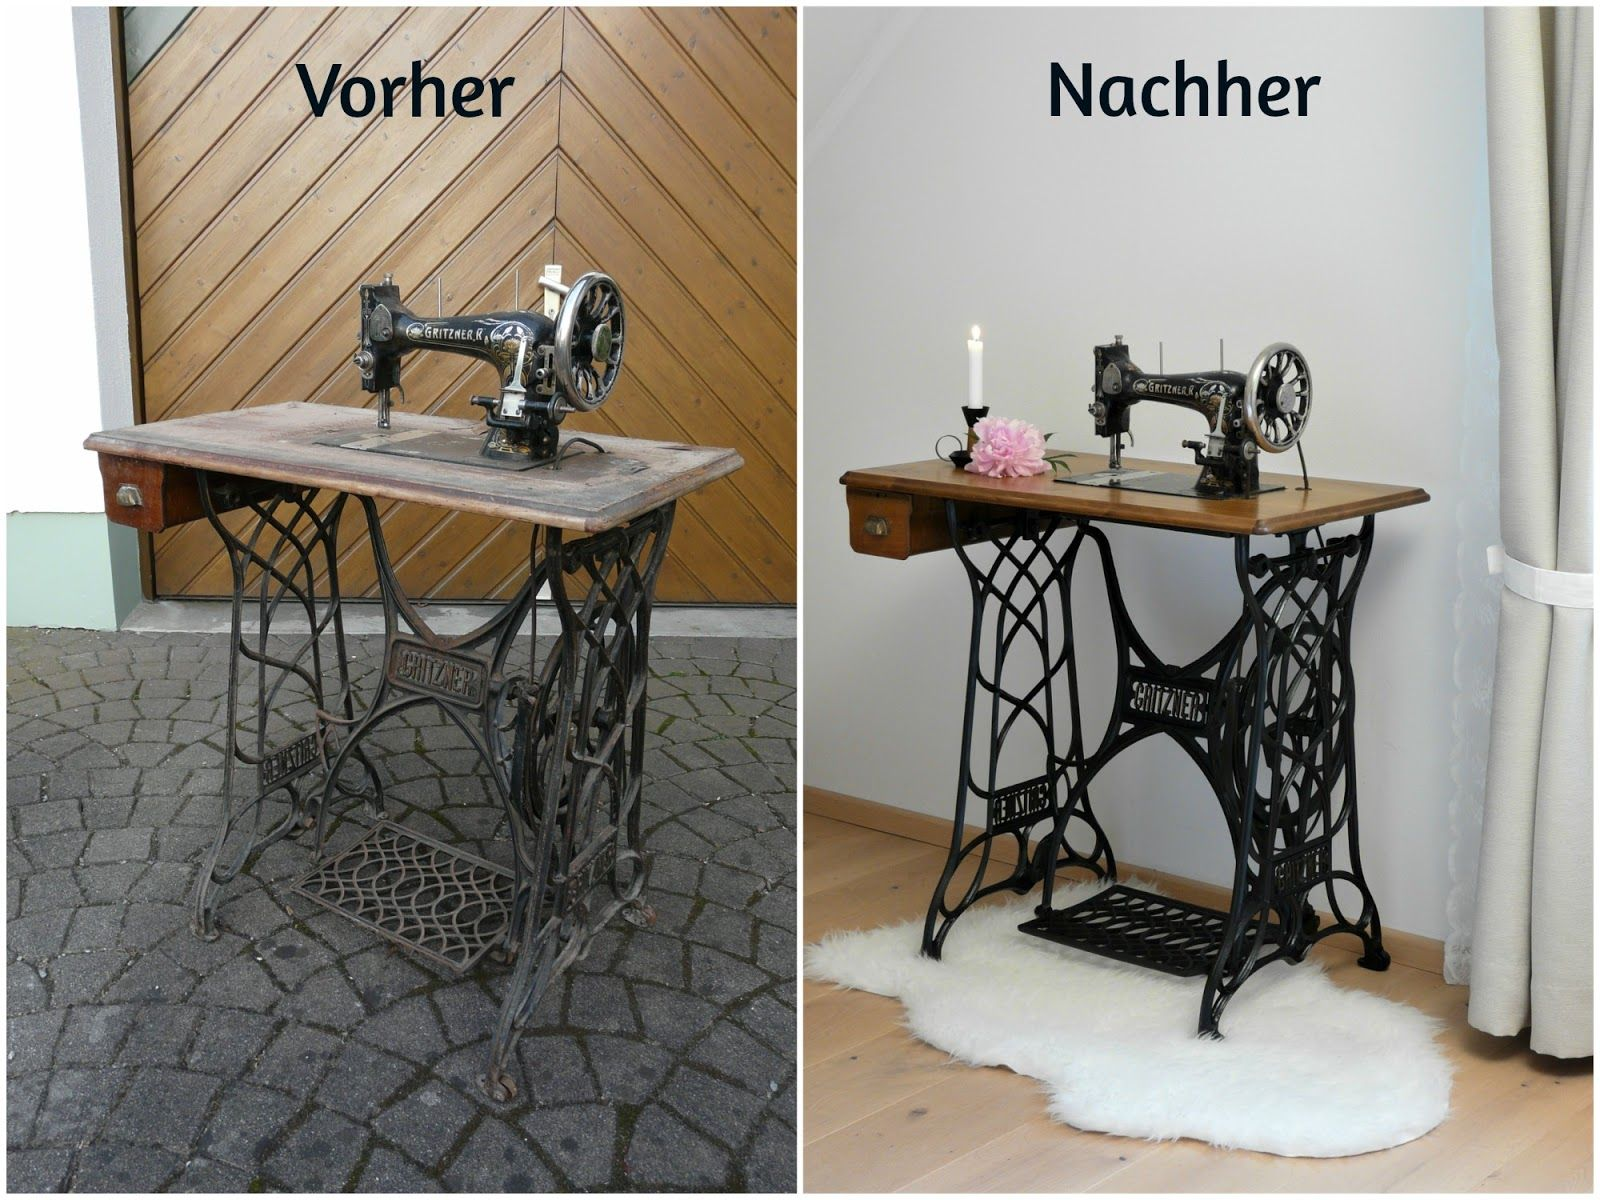 gritzner r gritzner n hmaschine singer n hmaschine alt singer n hmaschinentisch. Black Bedroom Furniture Sets. Home Design Ideas